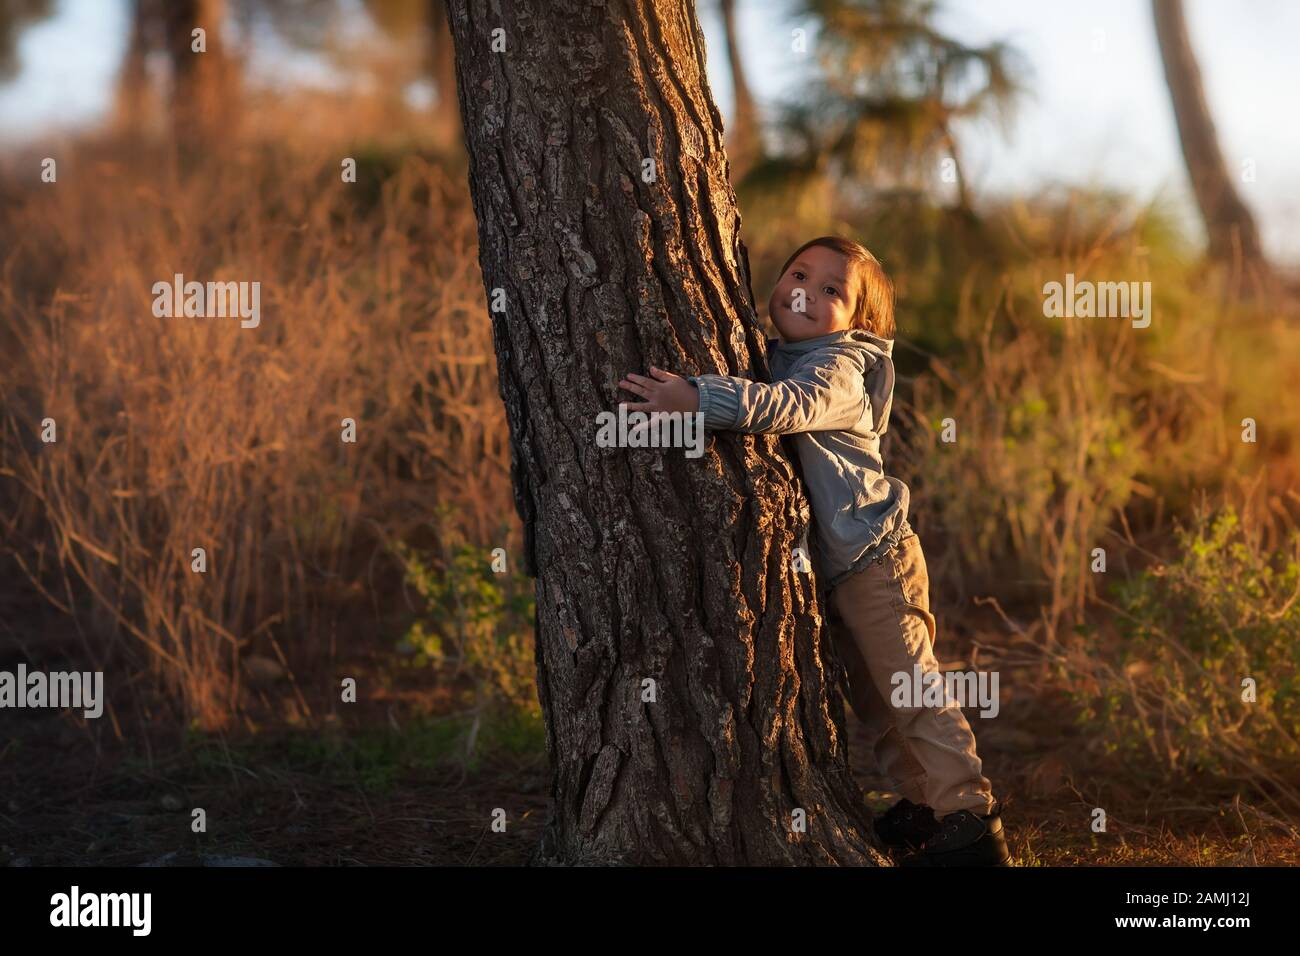 A cute little boy hugging a pine tree on a hill top during a sunset. Stock Photo